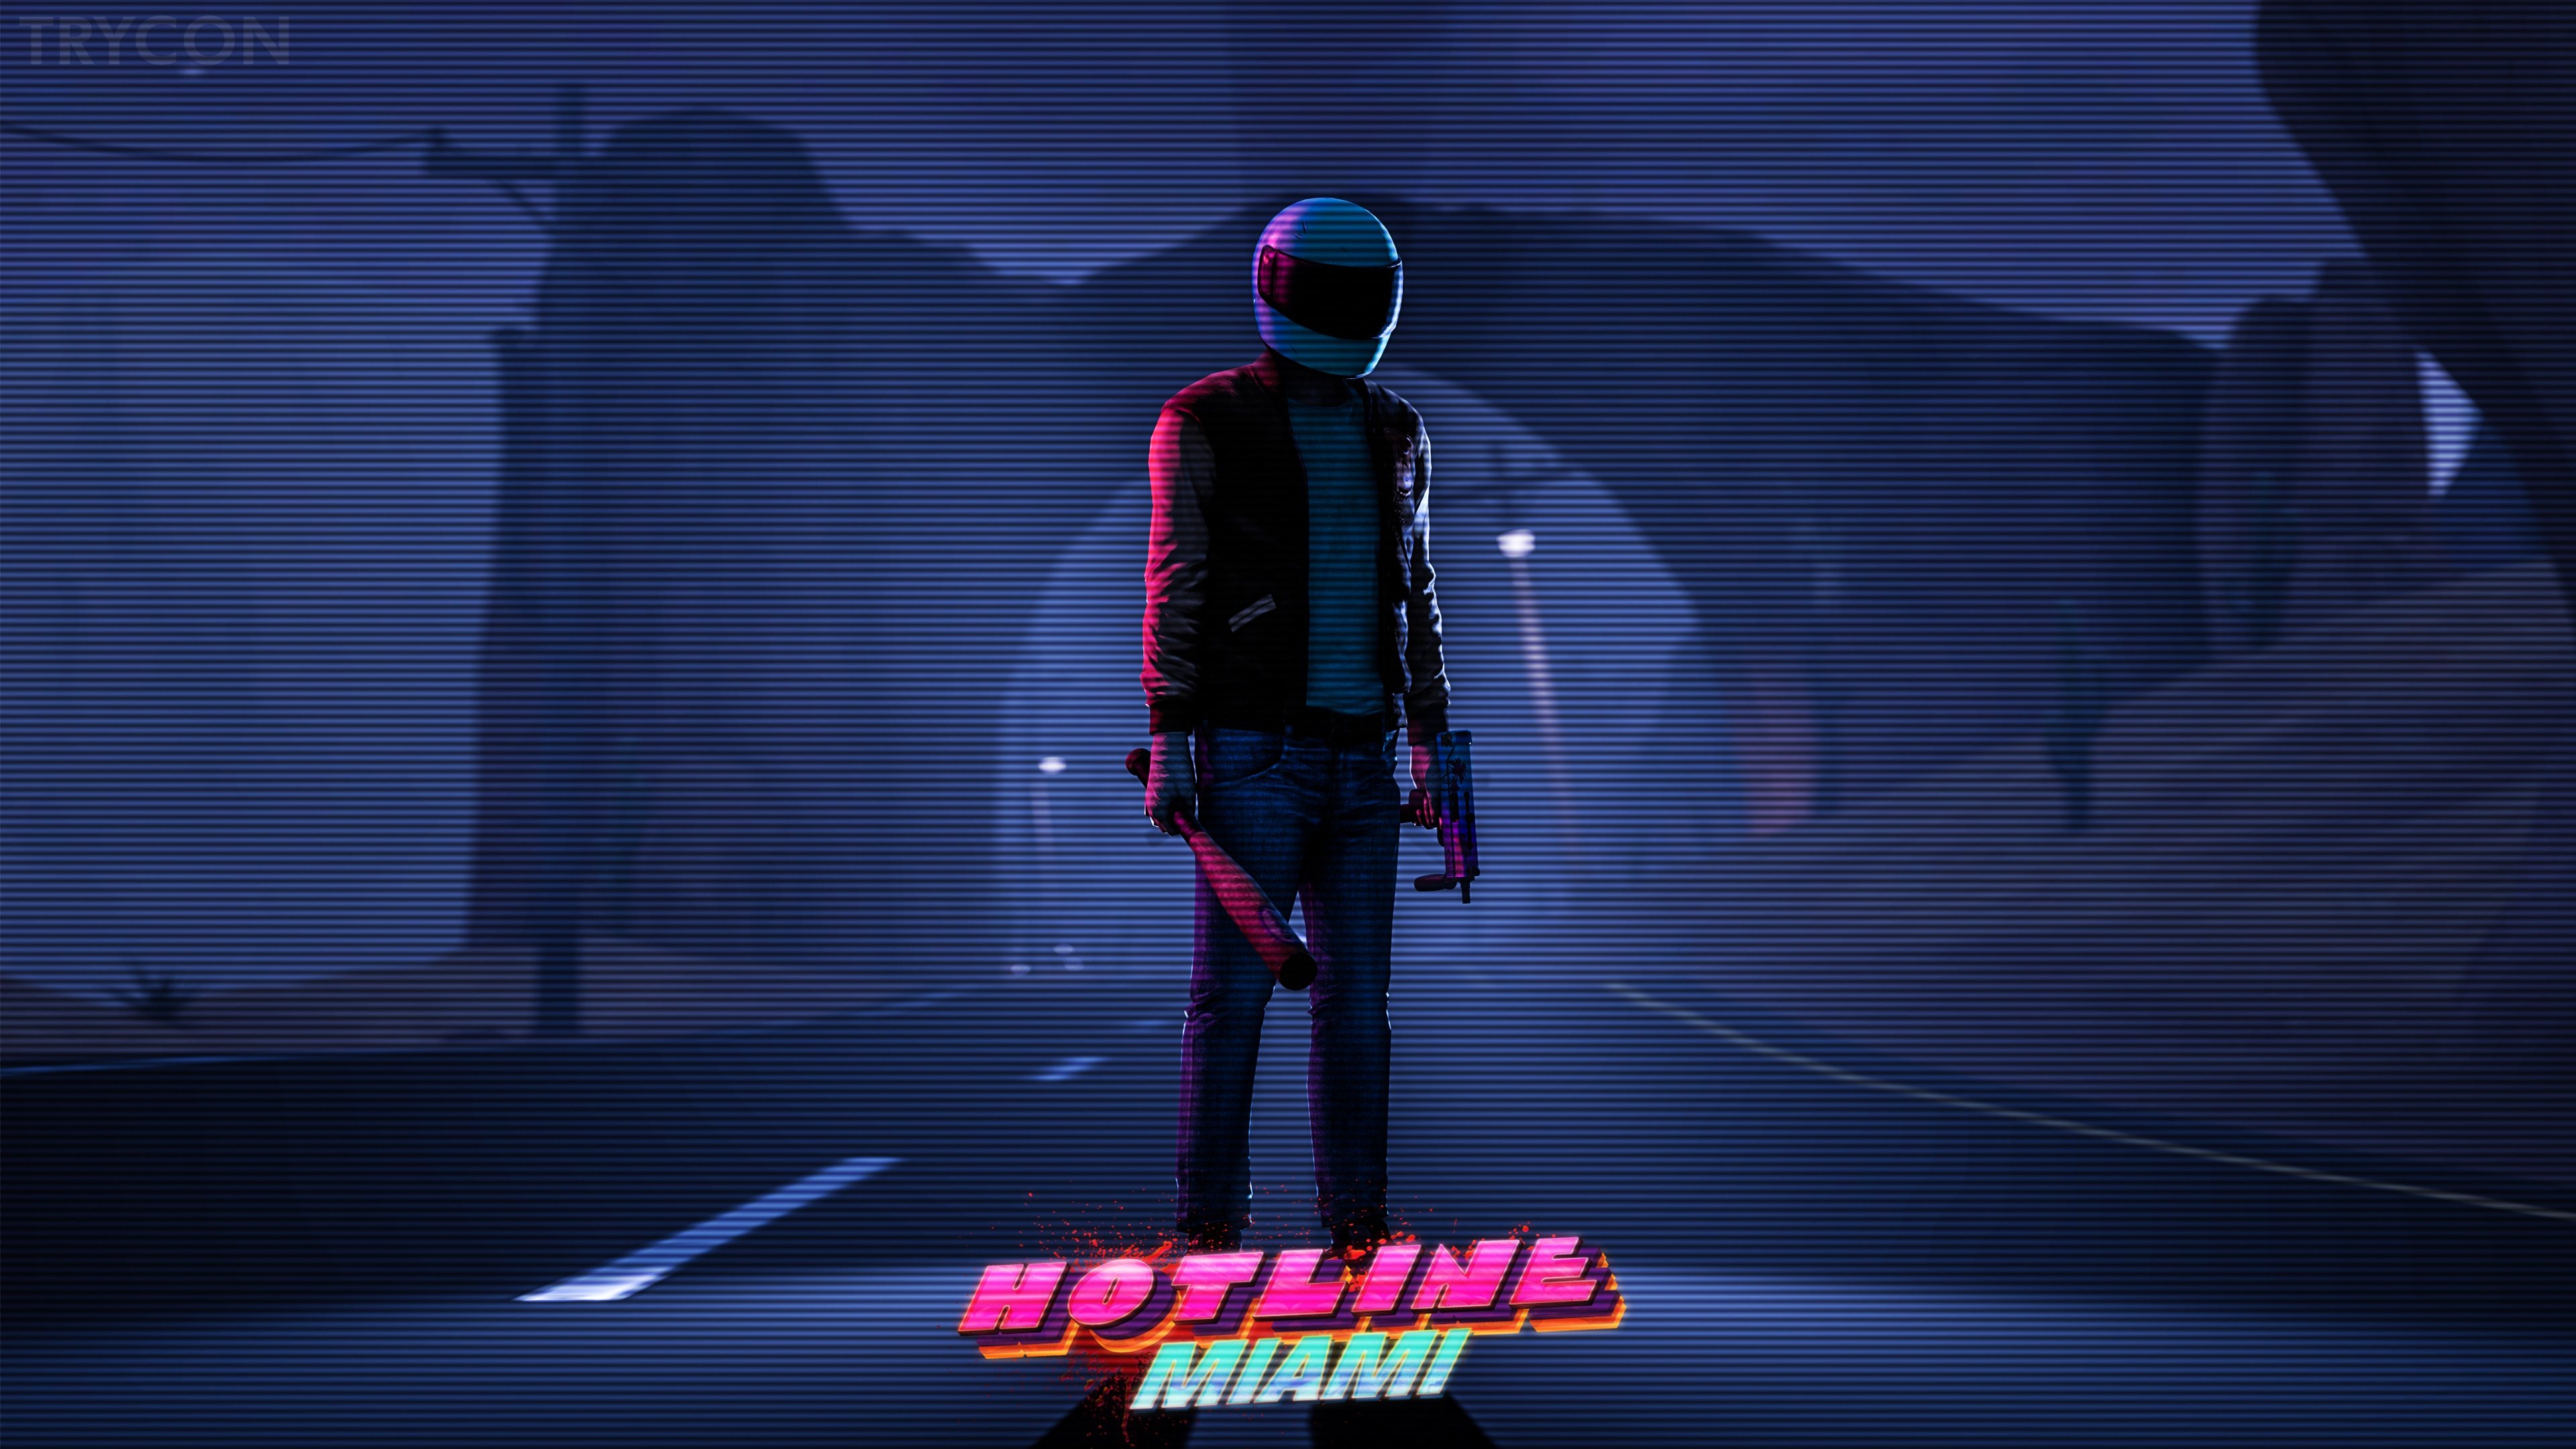 Hotline Miami, HD Games, 4k Wallpapers, Images